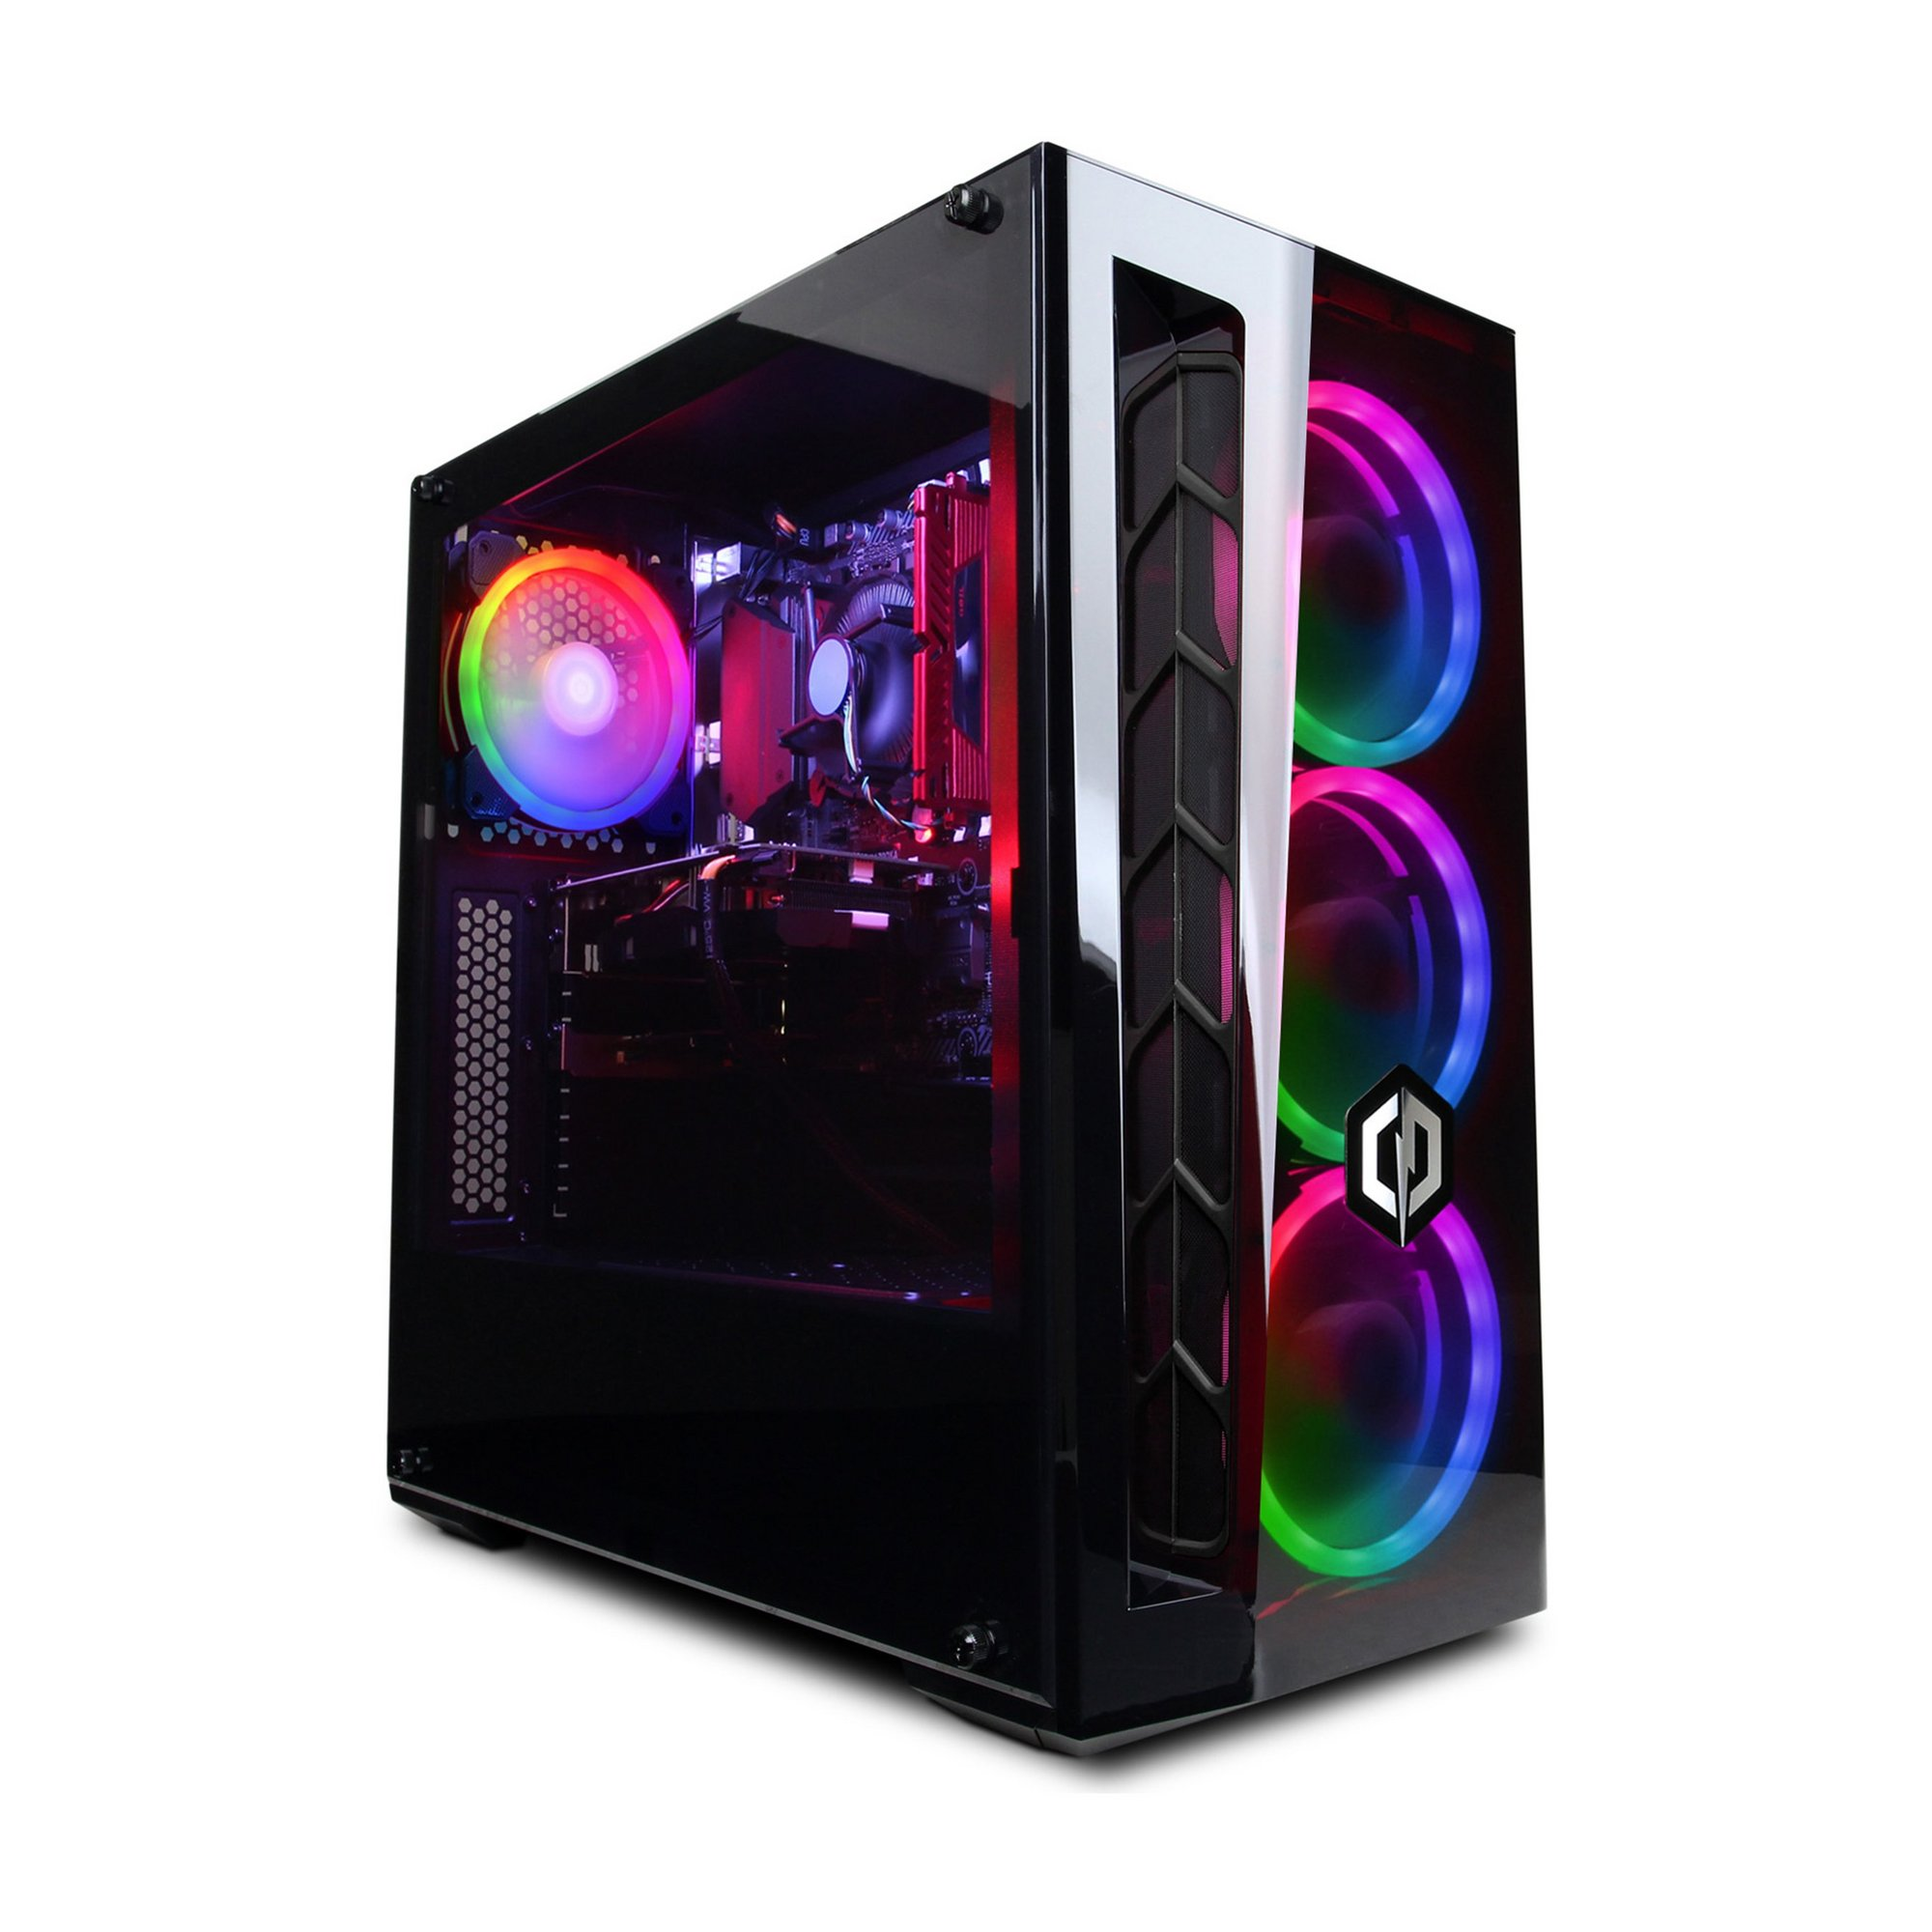 Image of Cyberpower AMD Ryzen 3 3200G Gaming PC